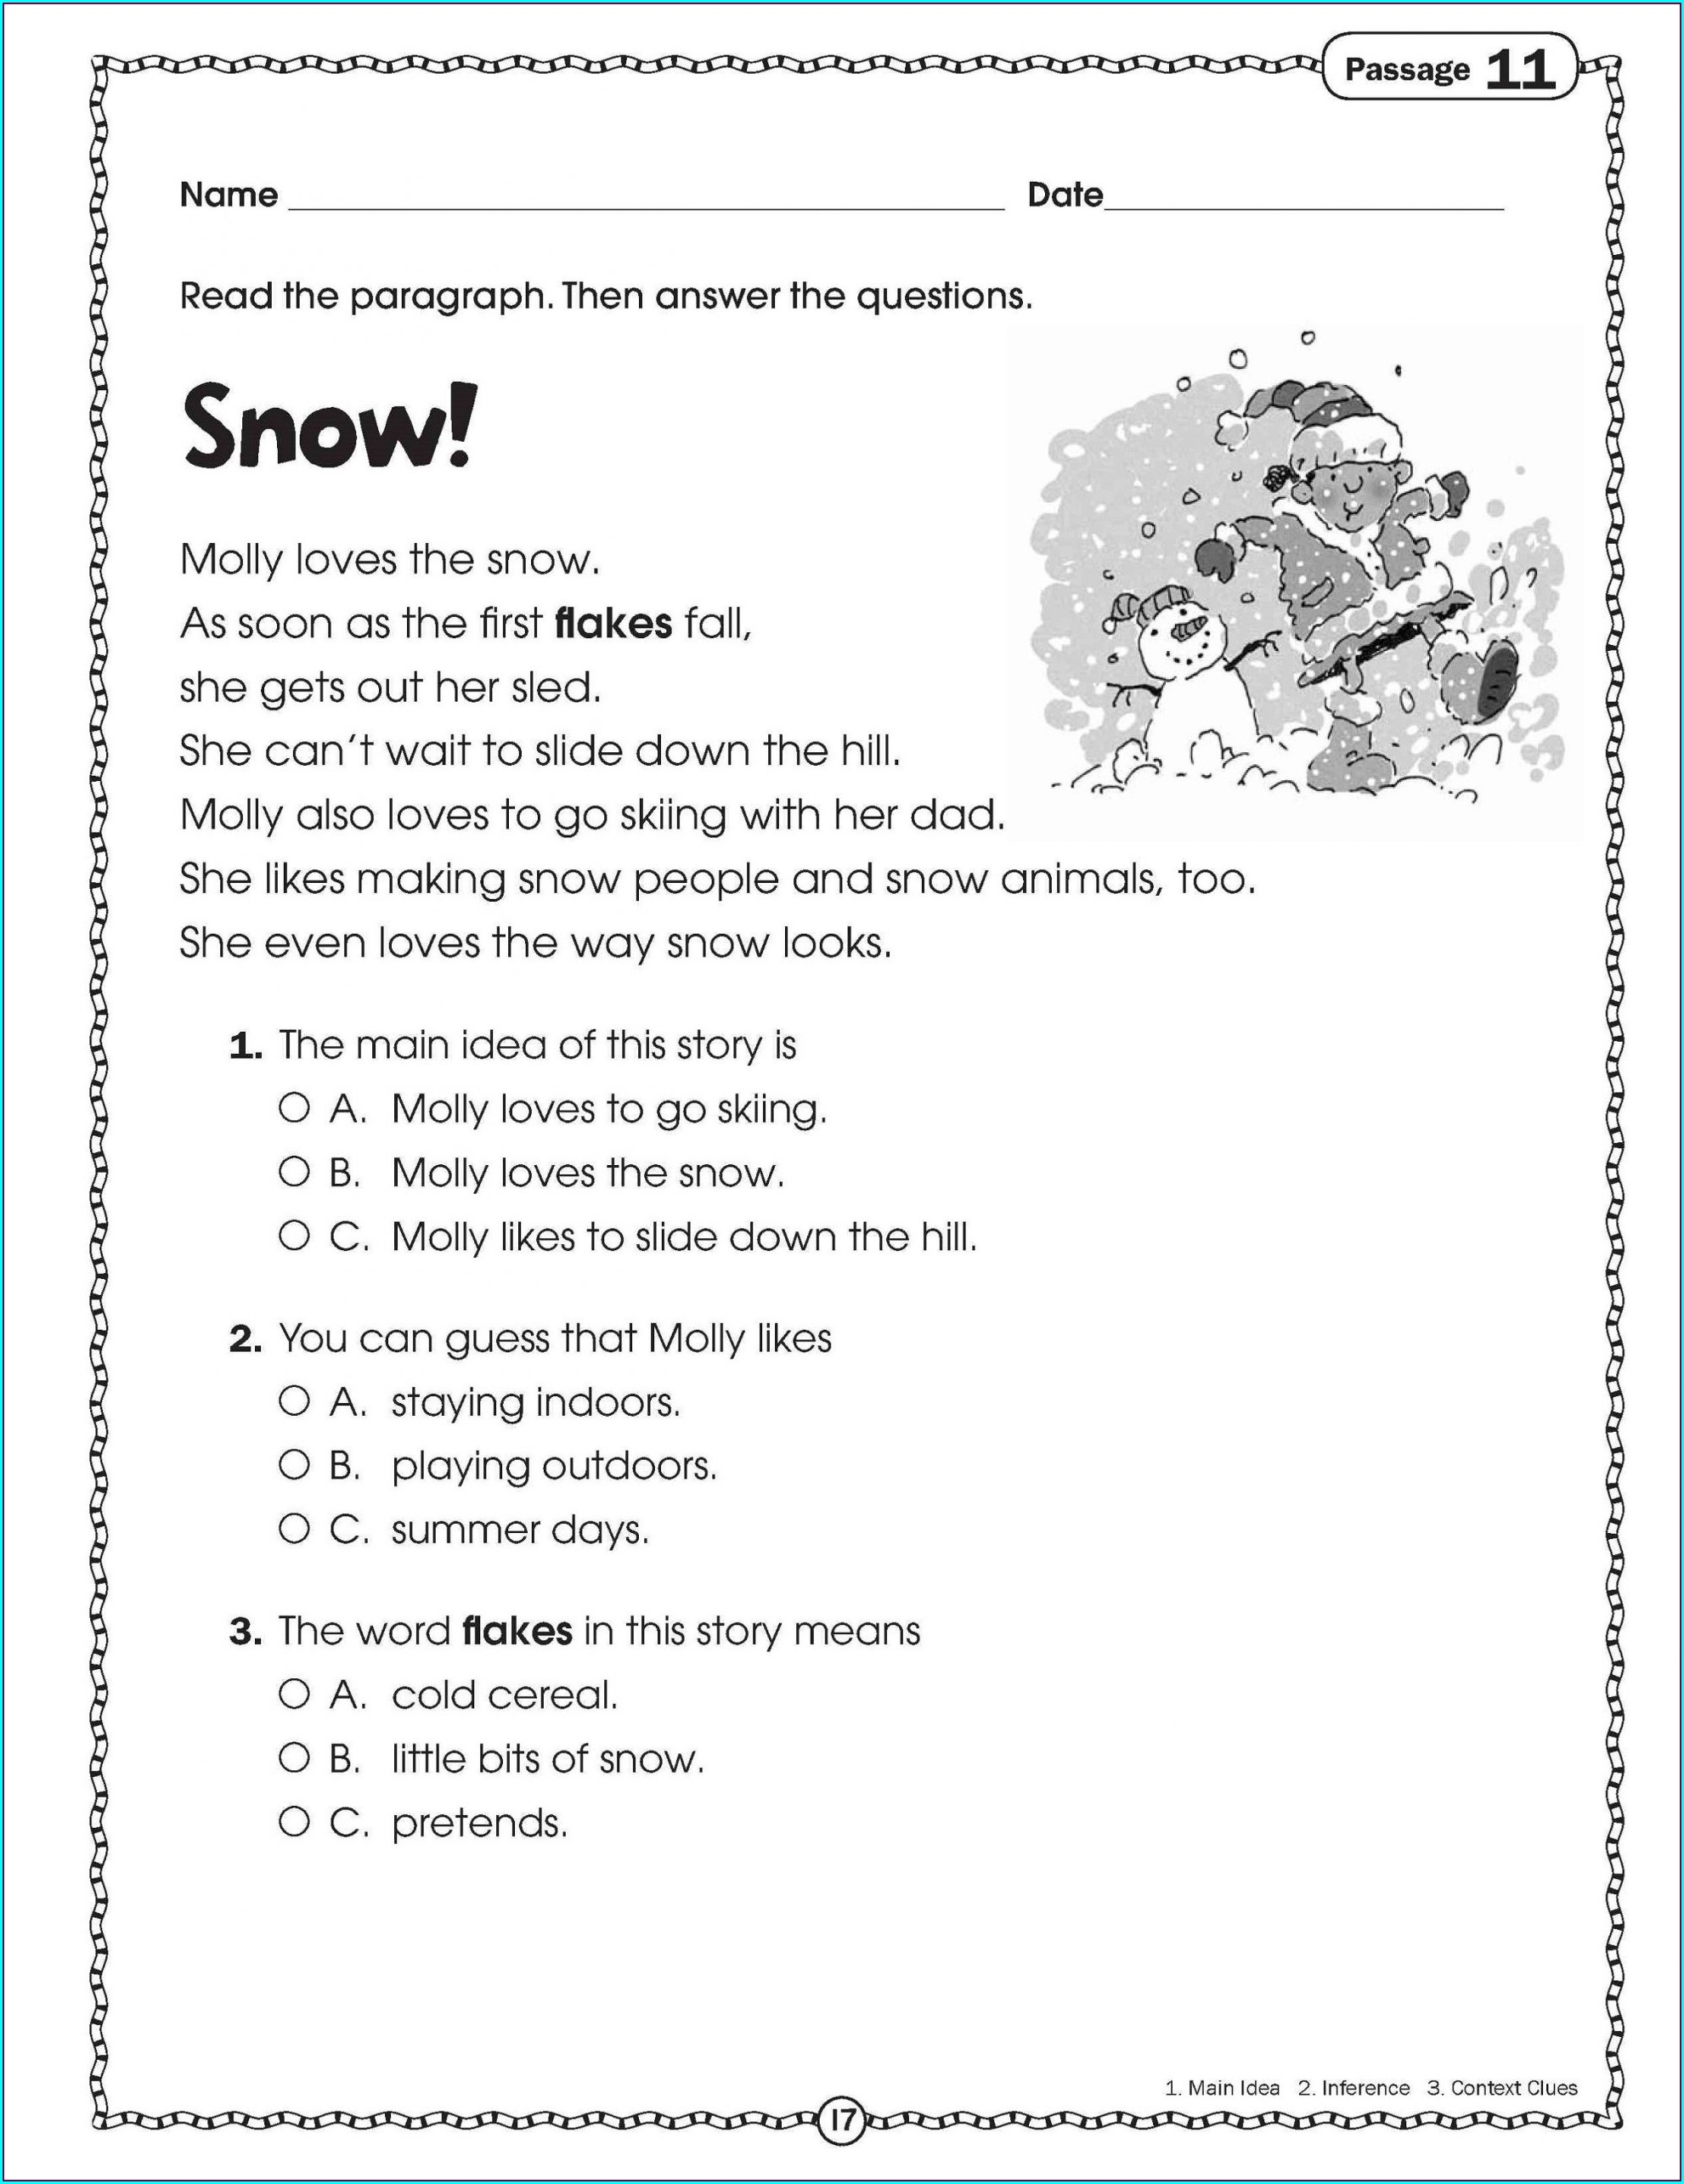 Printable Reading Comprehension Test For Grade 2